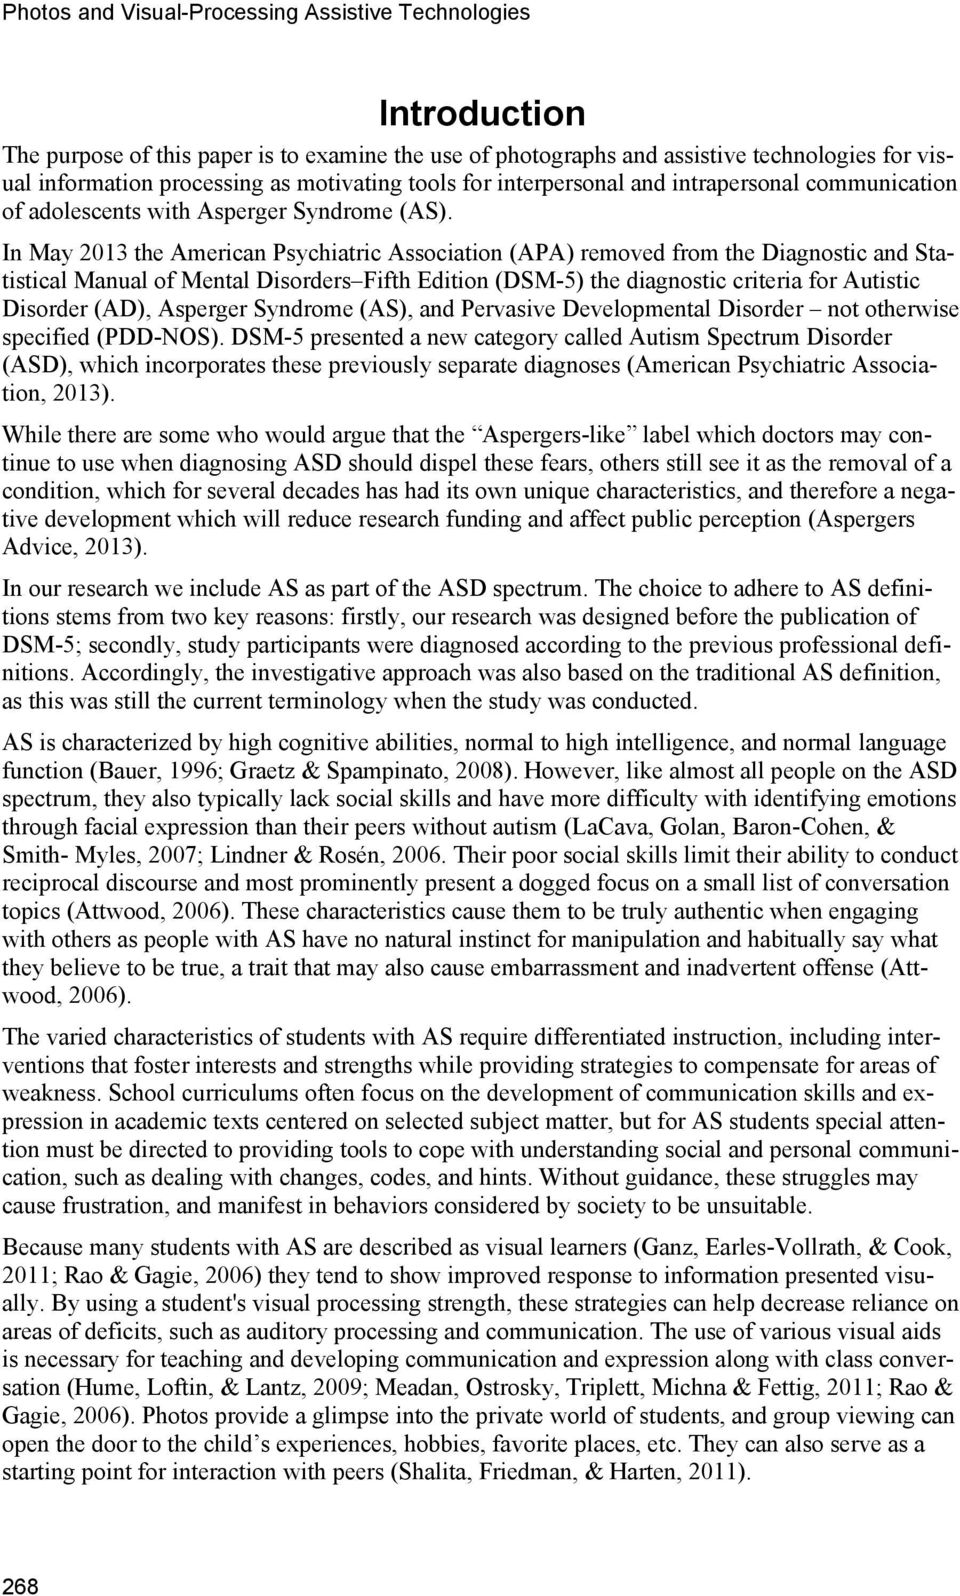 In May 2013 the American Psychiatric Association (APA) removed from the Diagnostic and Statistical Manual of Mental Disorders Fifth Edition (DSM-5) the diagnostic criteria for Autistic Disorder (AD),